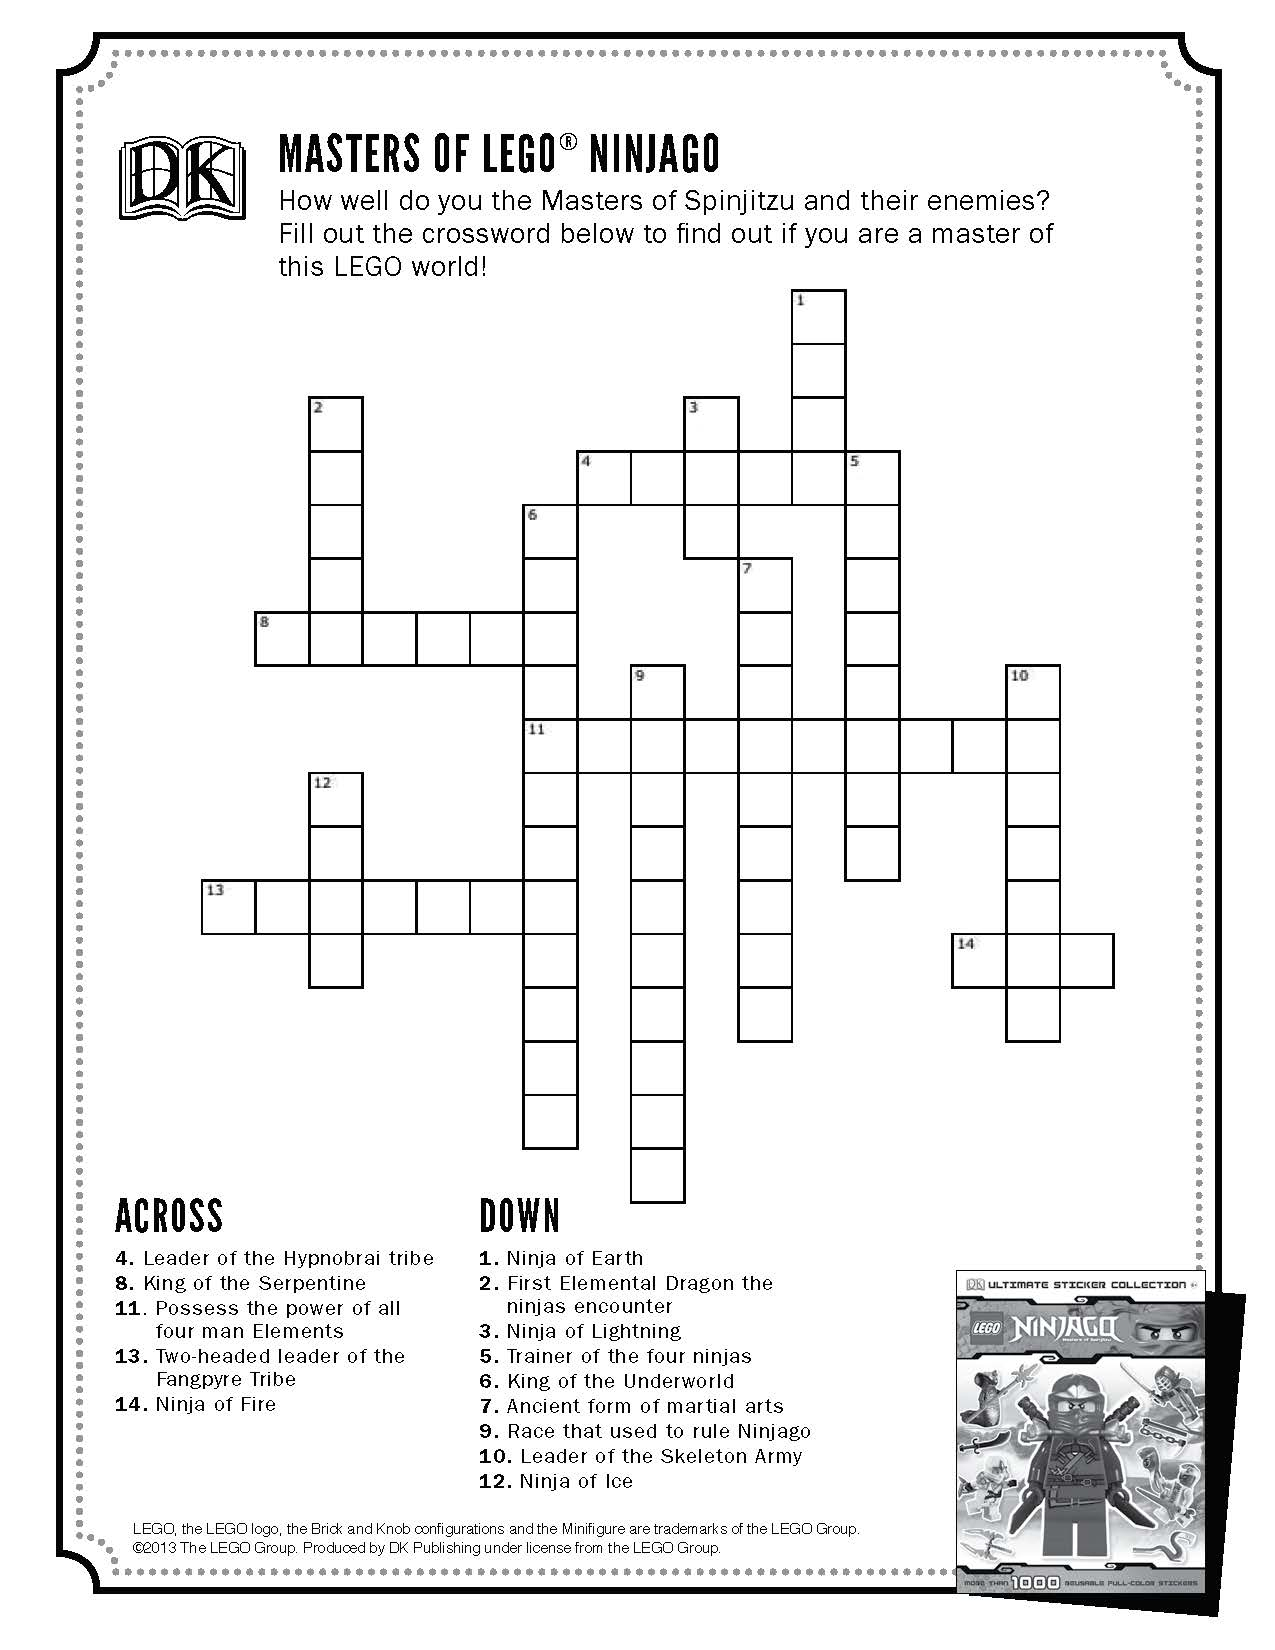 Lego® Printables And Activities | Brightly - Printable Lego Crossword Puzzle